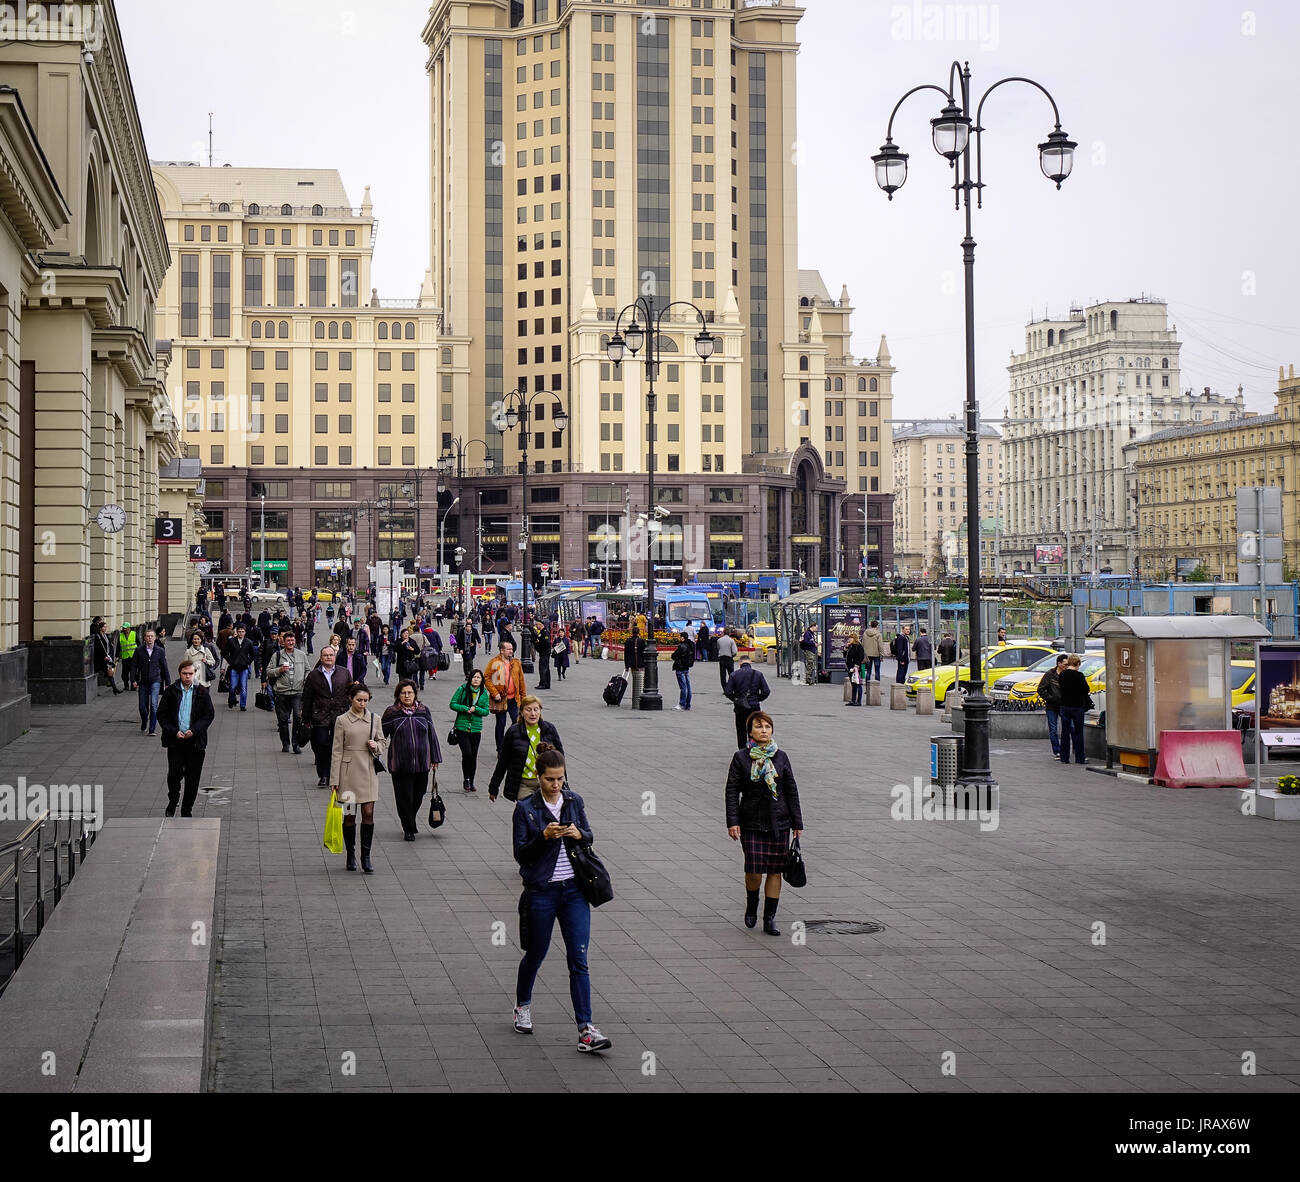 Moscow, Russia - Oct 3, 2016. People on Old Arbat Street at sunny day in Moscow, Russia. Moscow is the capital and most populous city of Russia, with  - Stock Image